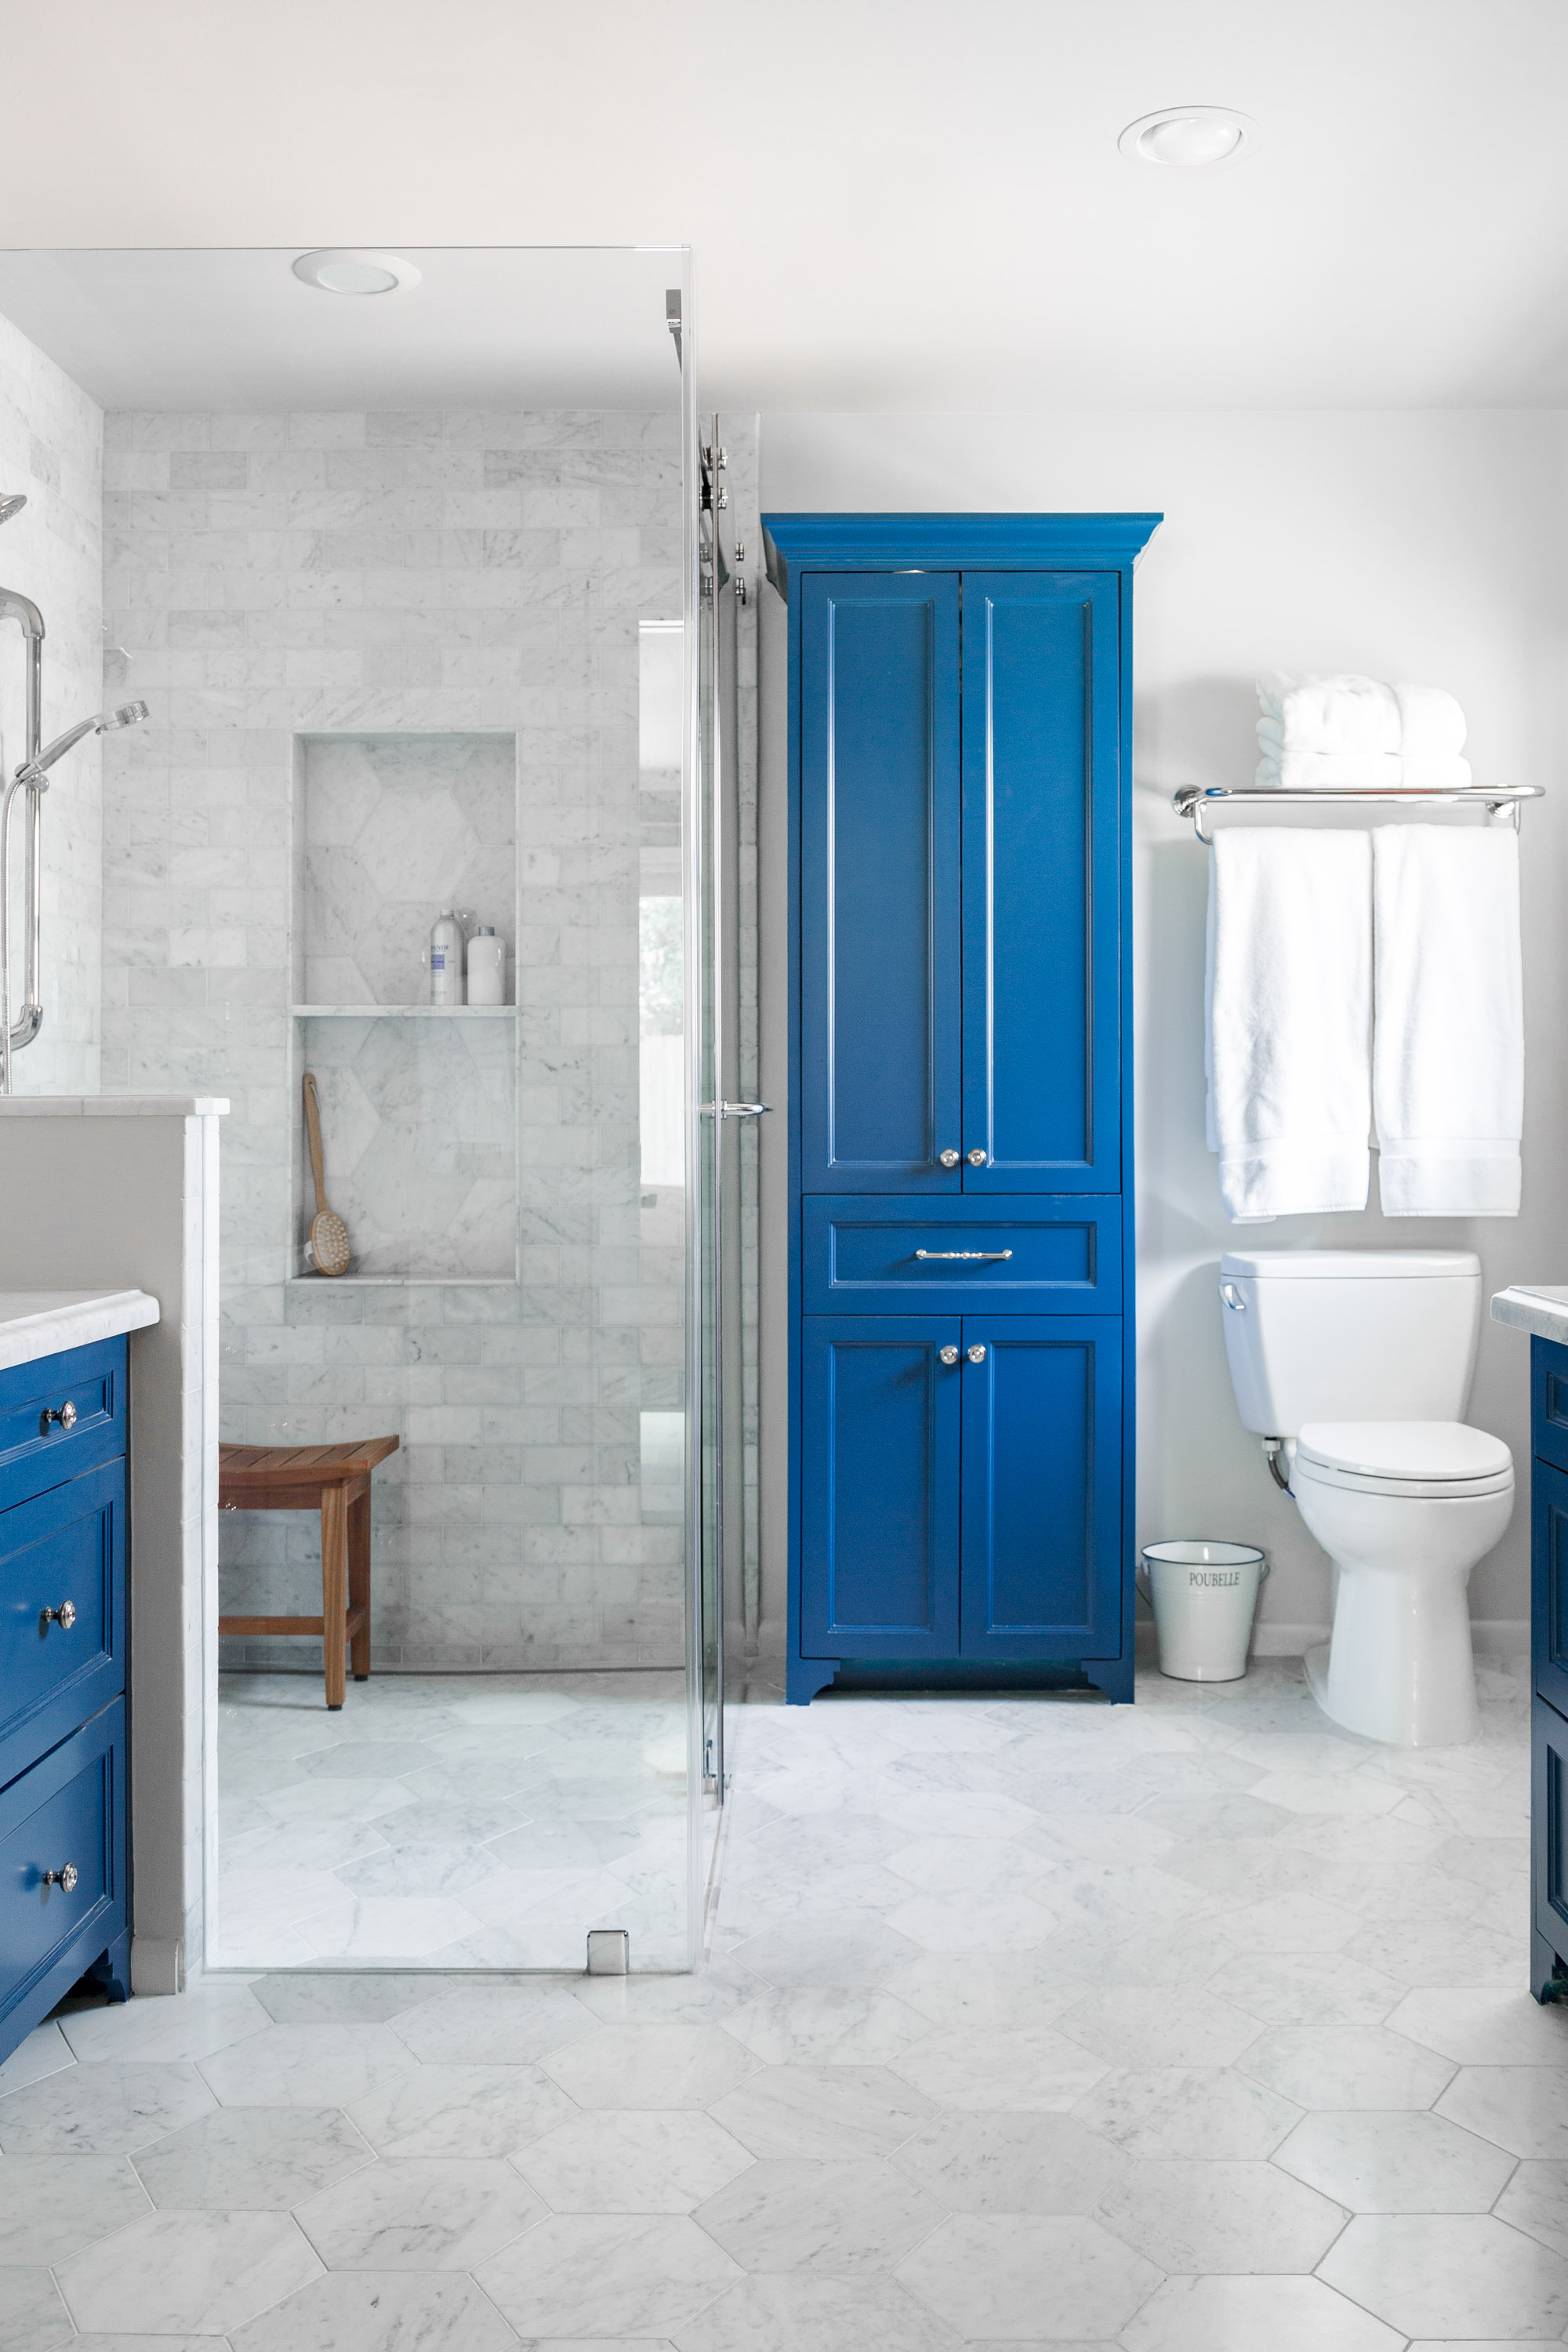 Carrara marble bathroom remodel with blue cabinetry | Carla Aston, Designer | Tori Aston, Photographer #bathroomremodel #marblebathroom #hextile #bluecabinets